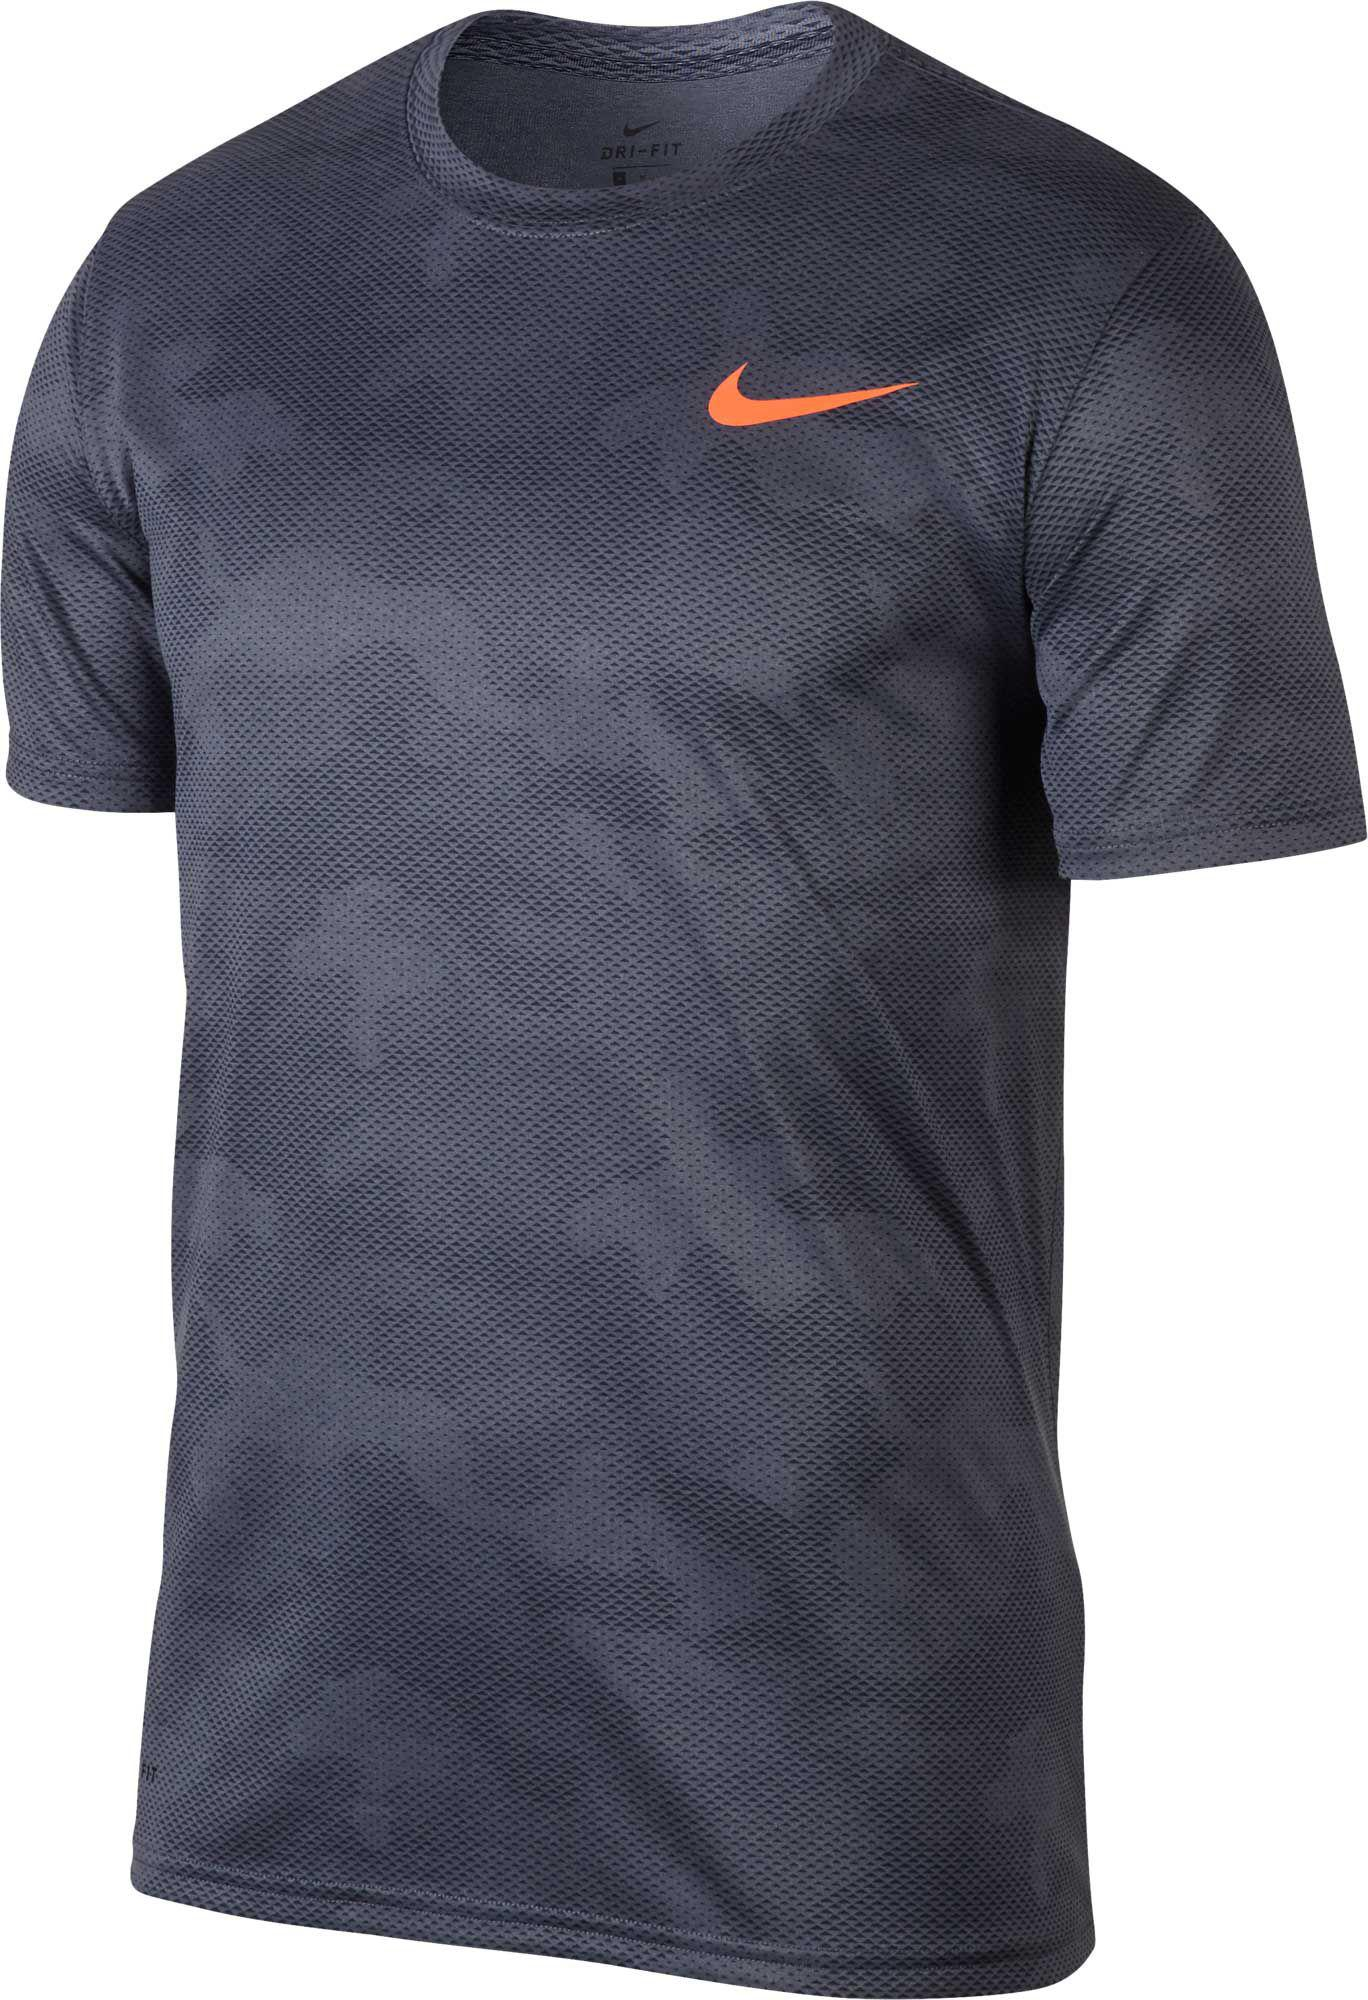 9cd7120a140 Lyst - Nike Dry Legend Camo Training T-shirt in Blue for Men